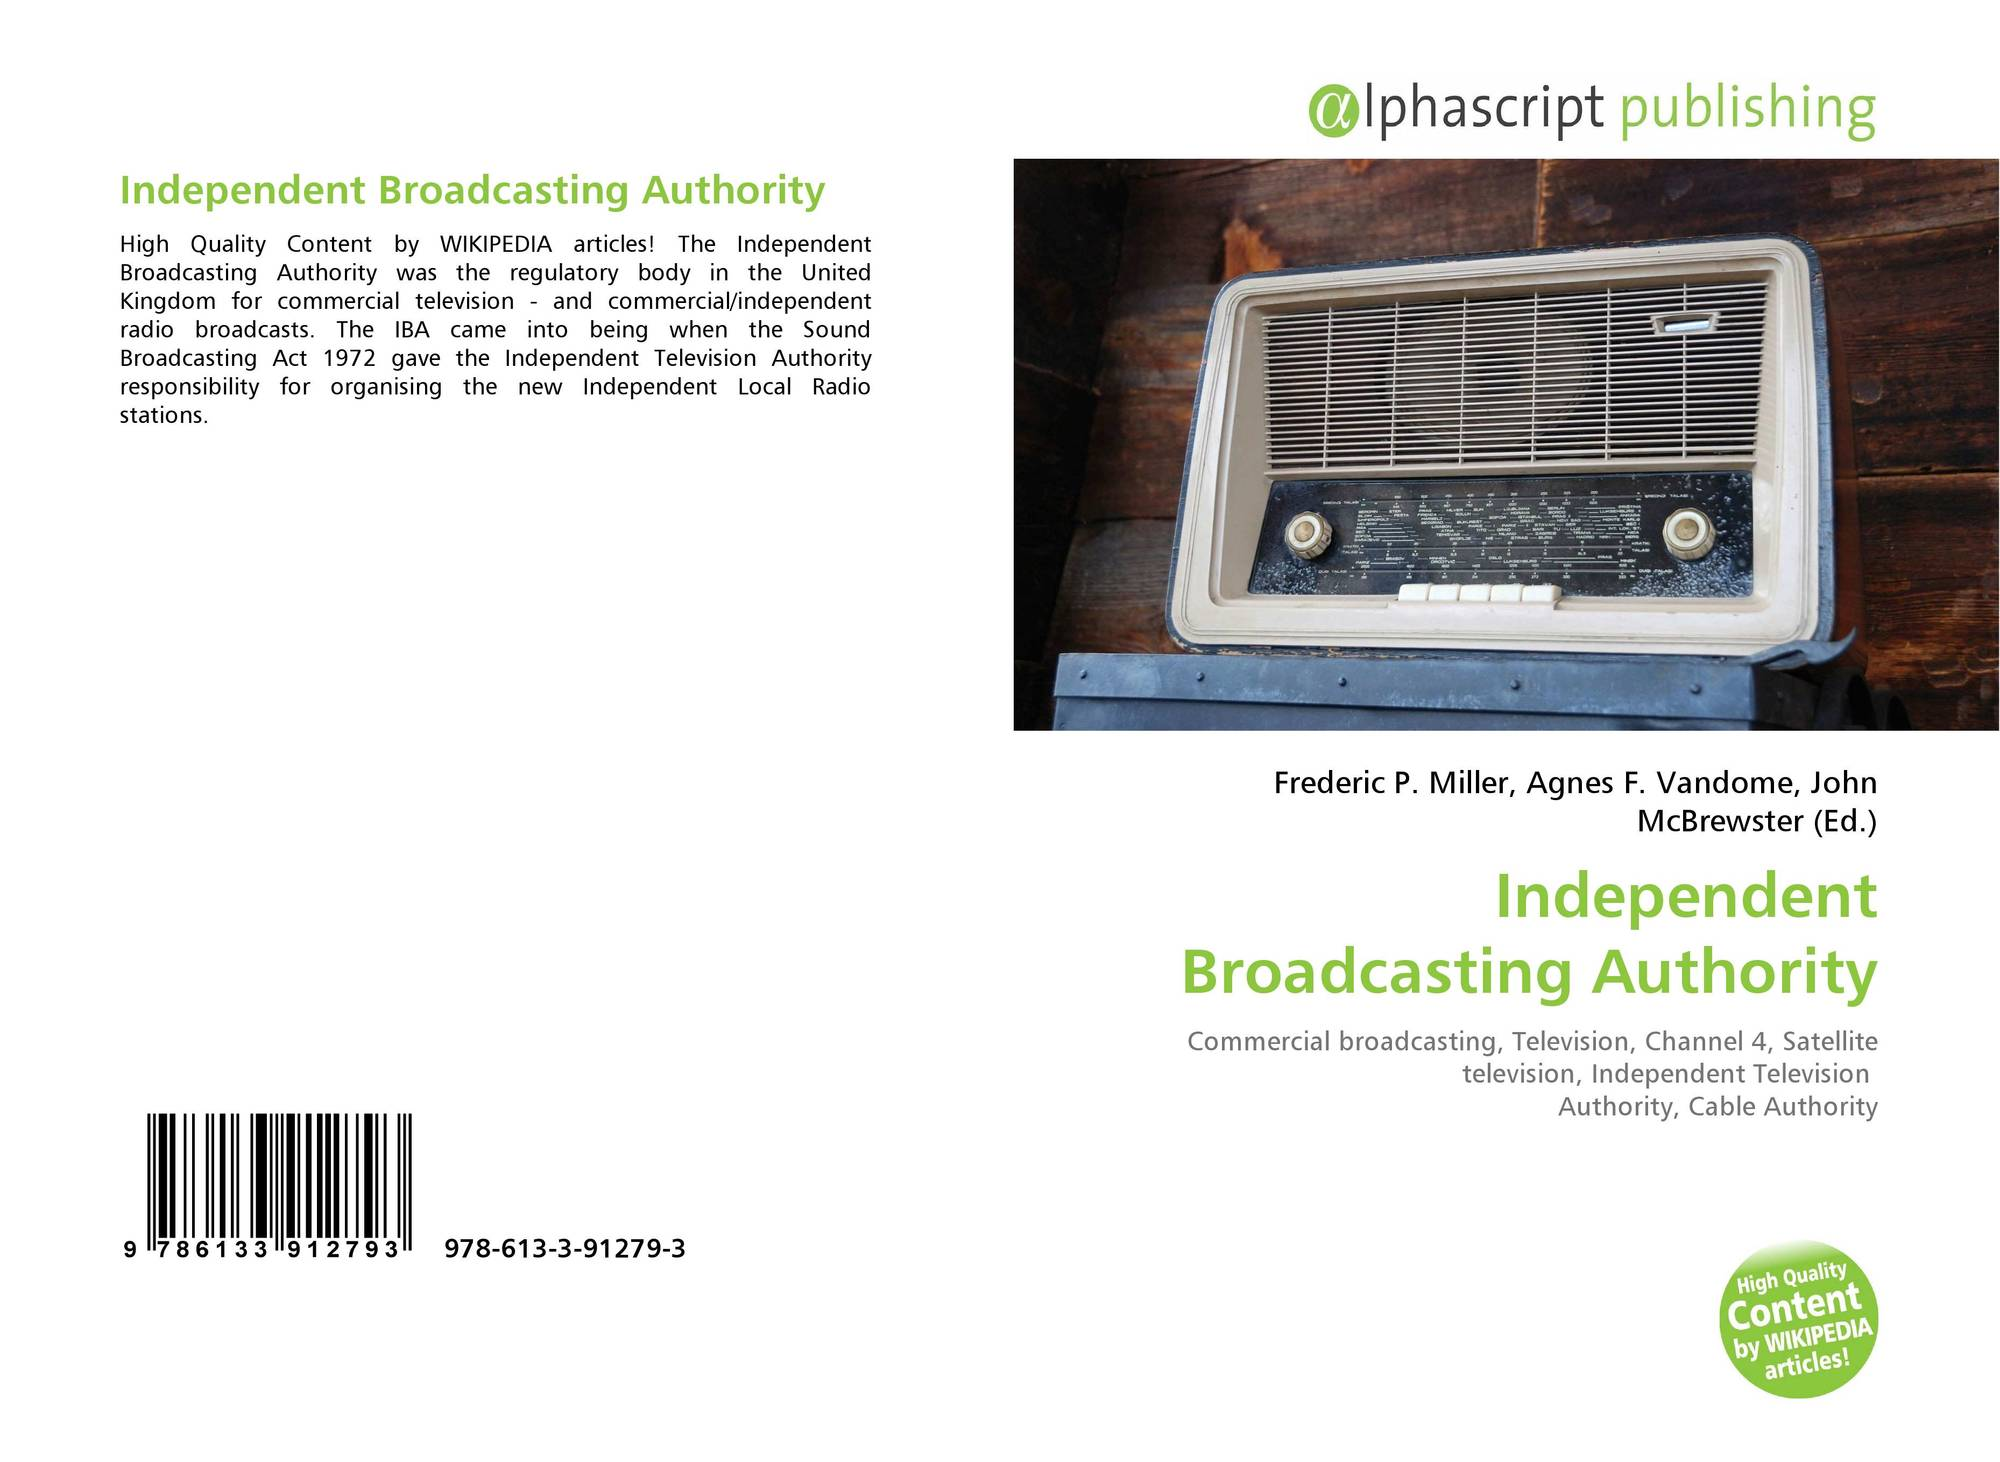 Independent Broadcasting Authority, 978-613-3-91279-3, 6133912790